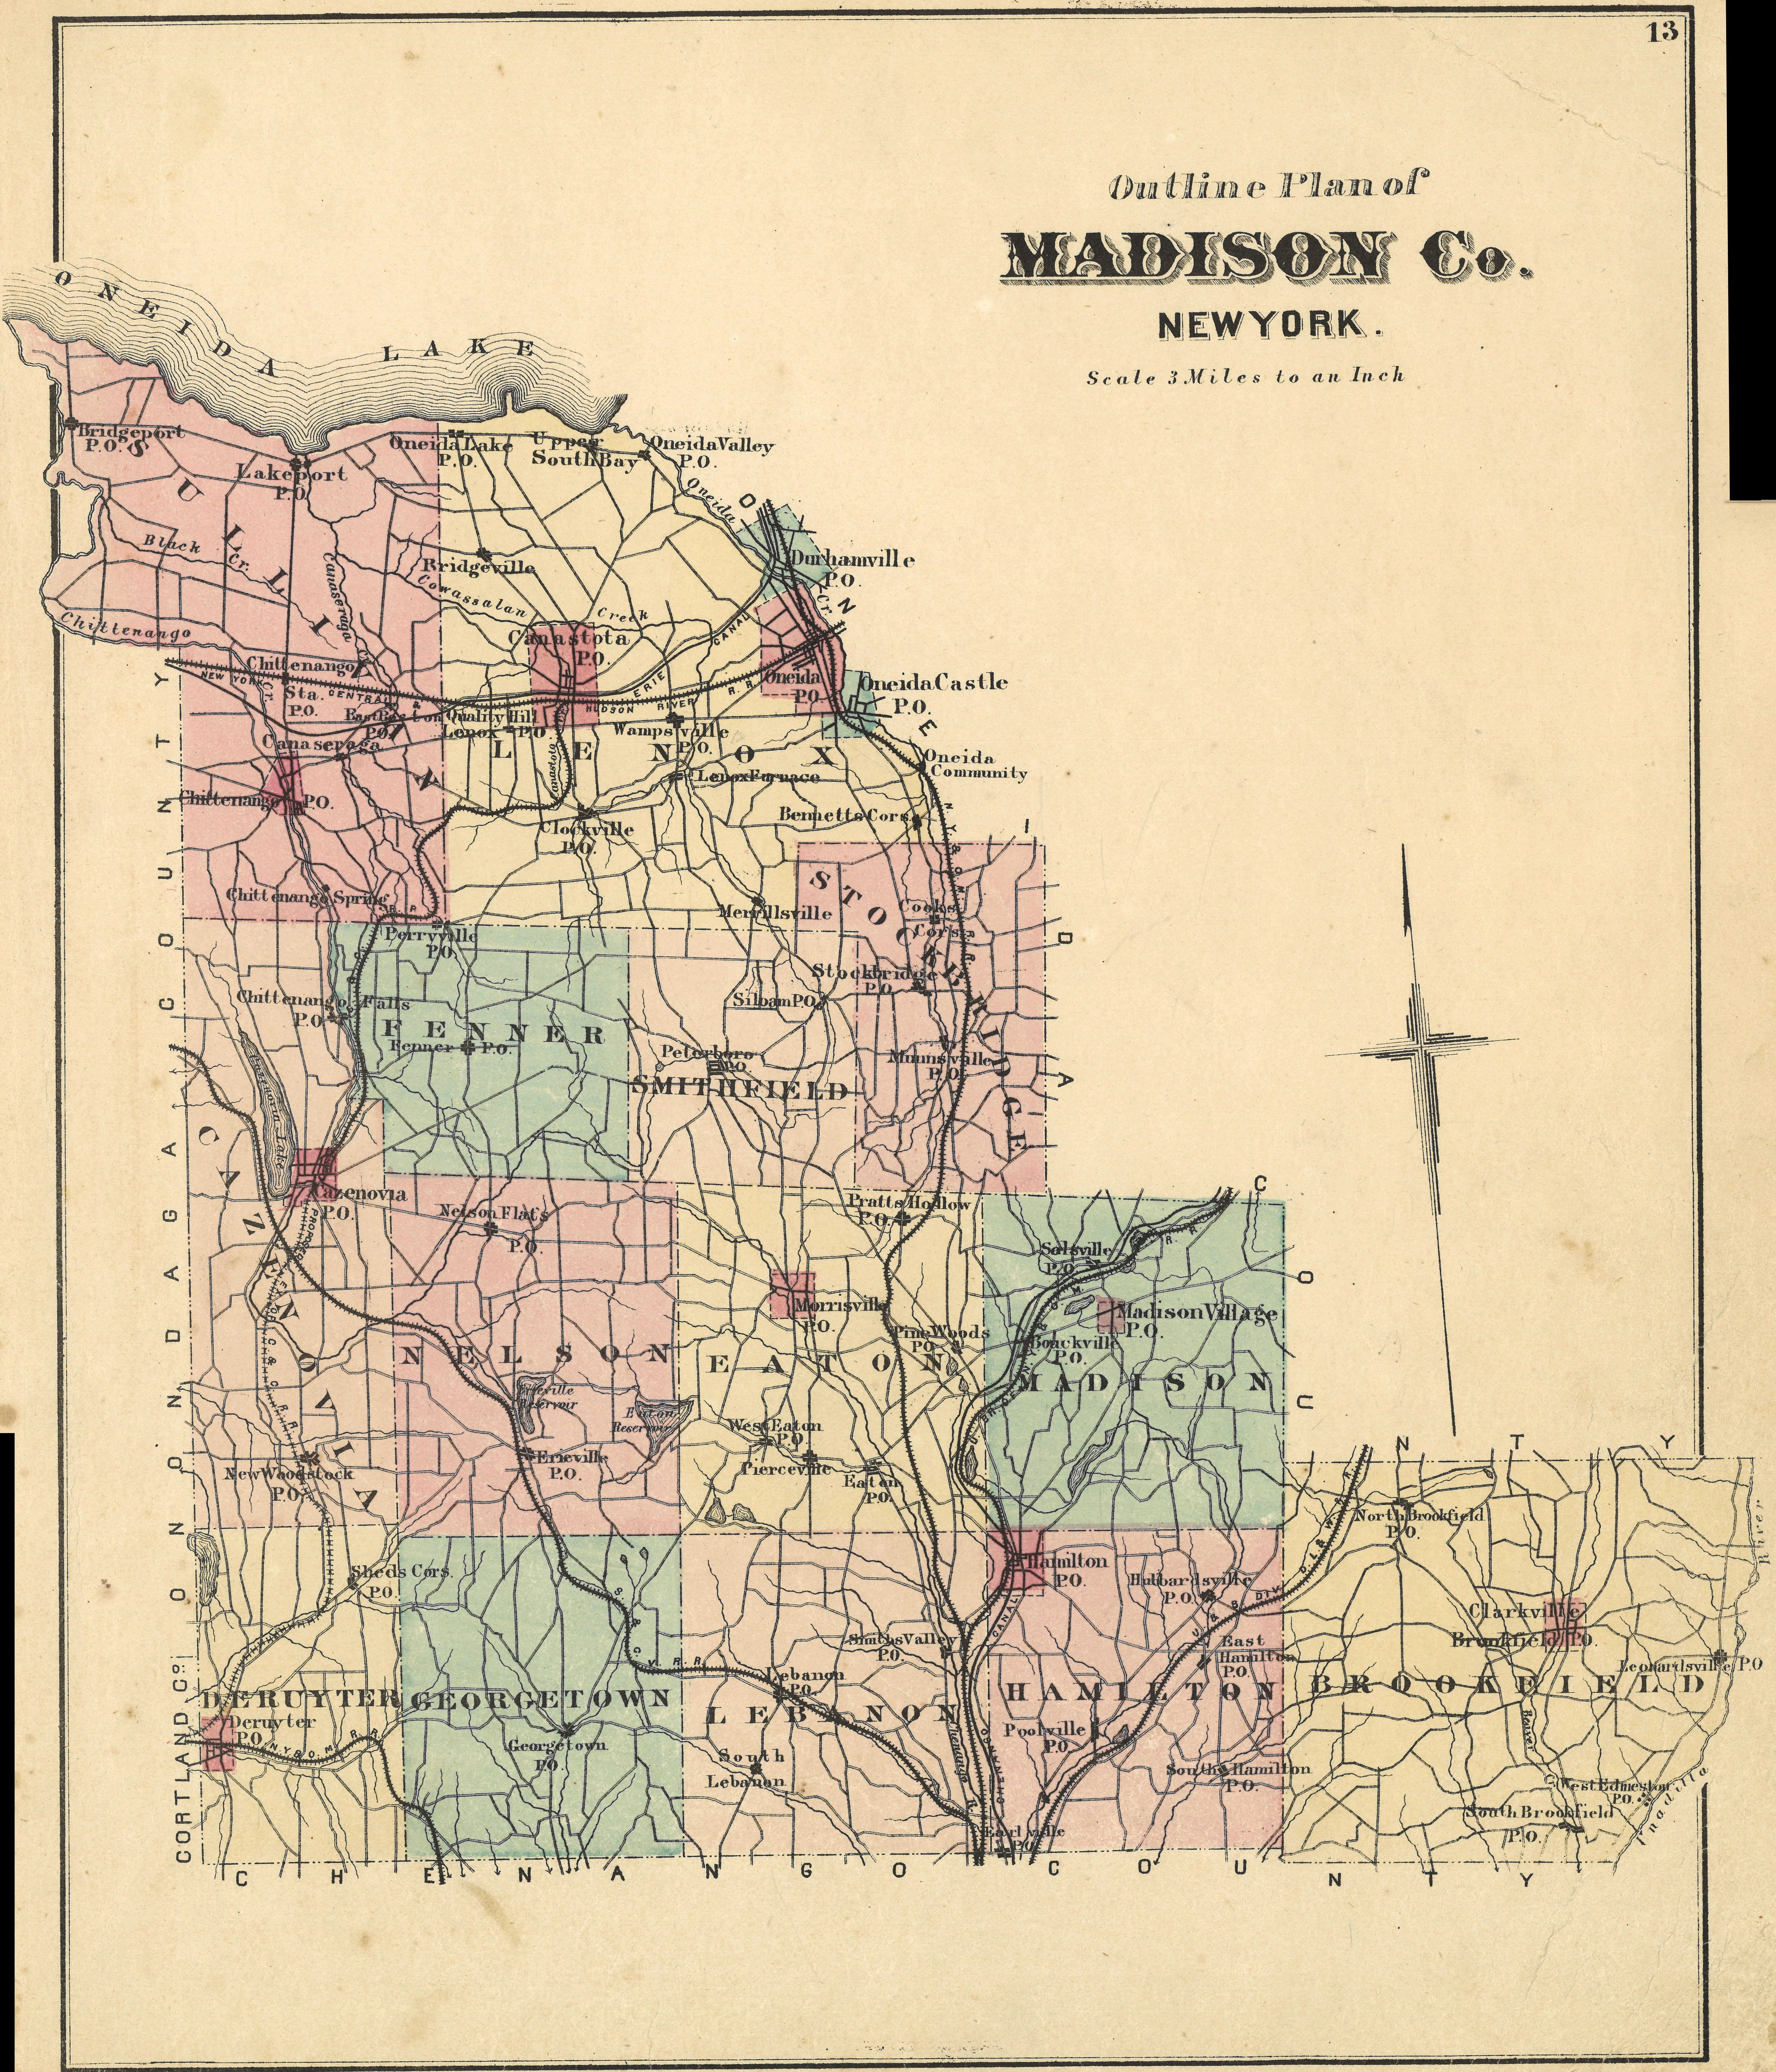 Maps | Madison County, NY Madison County Map on madison washington map, northwest county map, madison va map, madison al map, stewart county map, long county map, grainger county map, early county map, letcher county map, bremer county map, chesapeake county map, tennessee map, west orange county map, madison village map, sweet grass county map, travel indiana county map, madison elevation map, elliott county map, chariton county map, warwick county map,